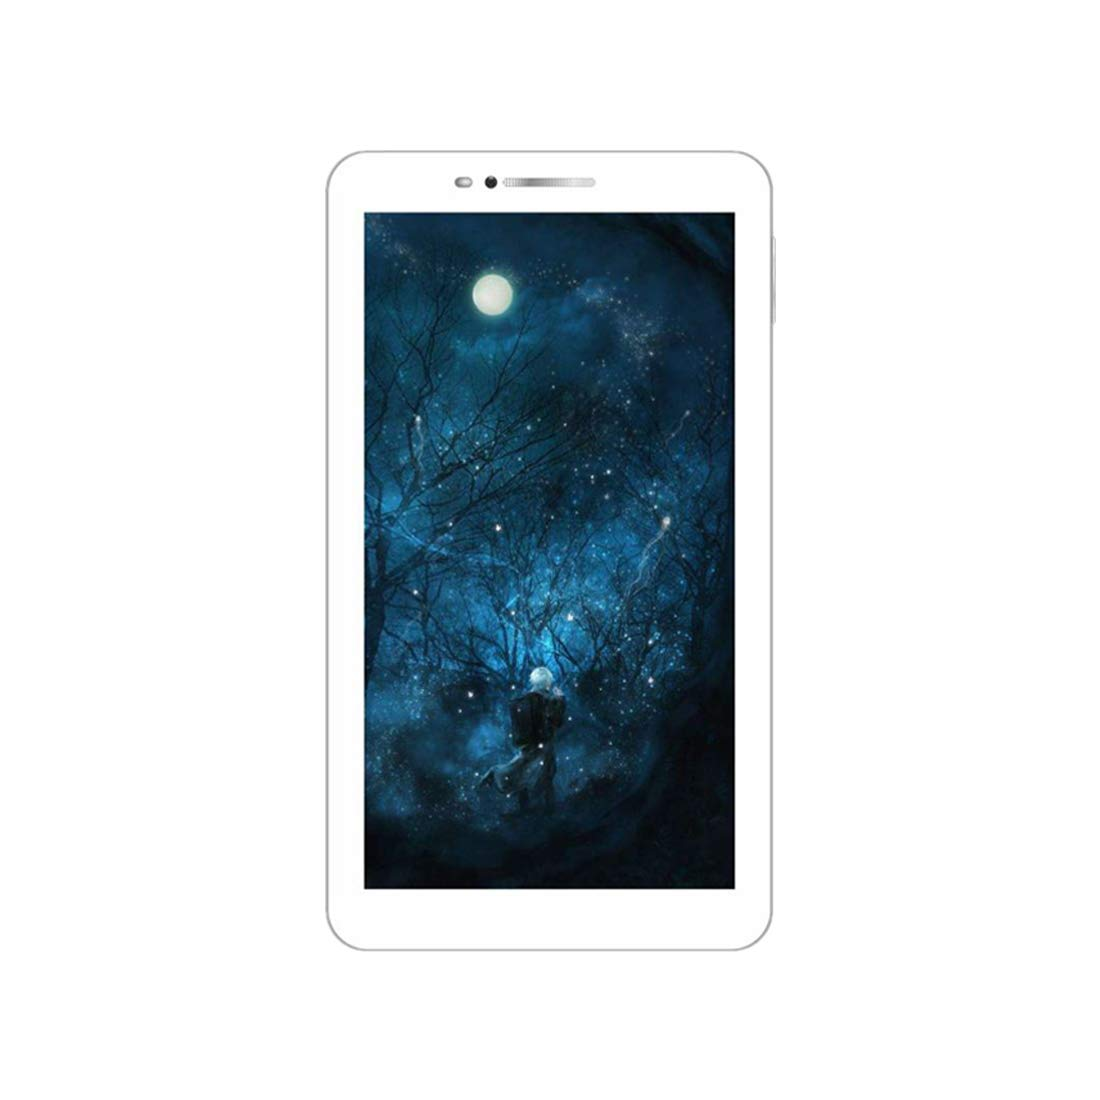 IKall N8 (2+16) Tablet - Gold